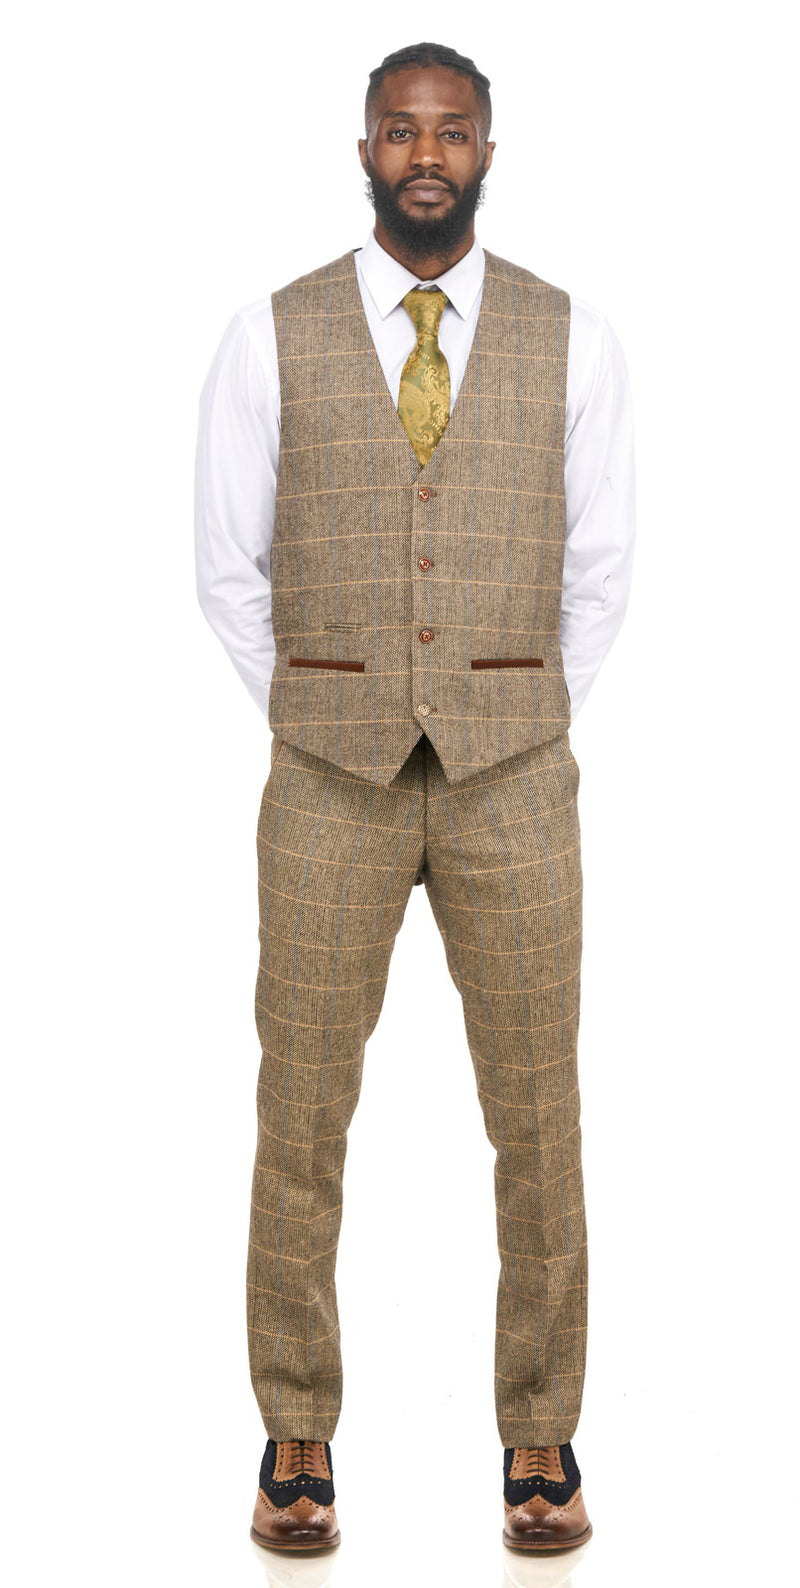 Brown Tweed Waistcoats |  Mens Tweed Waistcoats | Mens Tweed Suits | Marc Darcy Suits